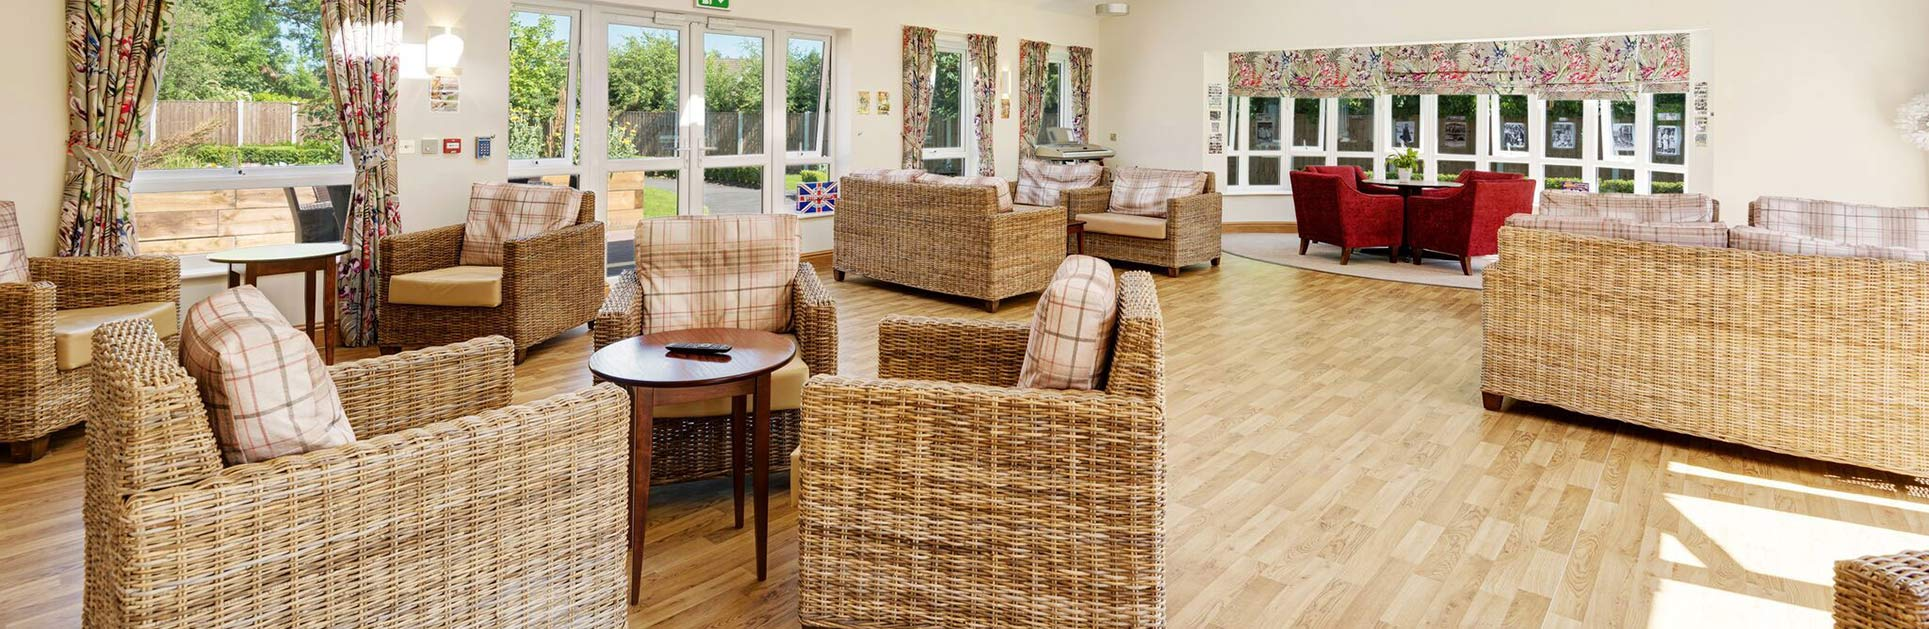 Four Oaks Luxury Nursing Home